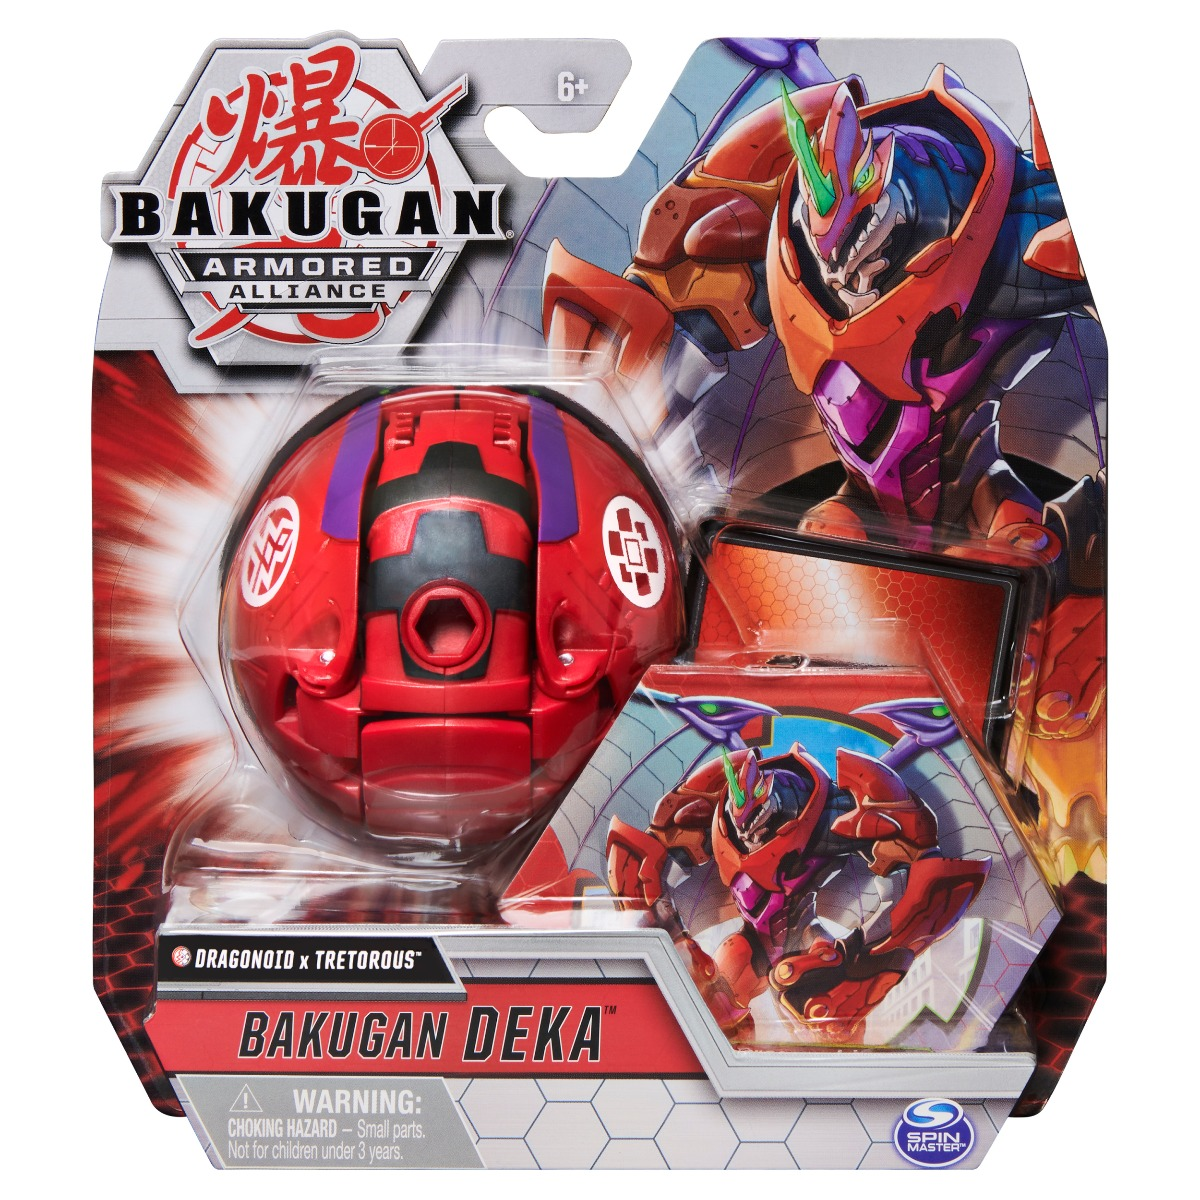 Figurina Bakugan Deka Armored Alliance, Dragonoid x Tretorous, 20125929